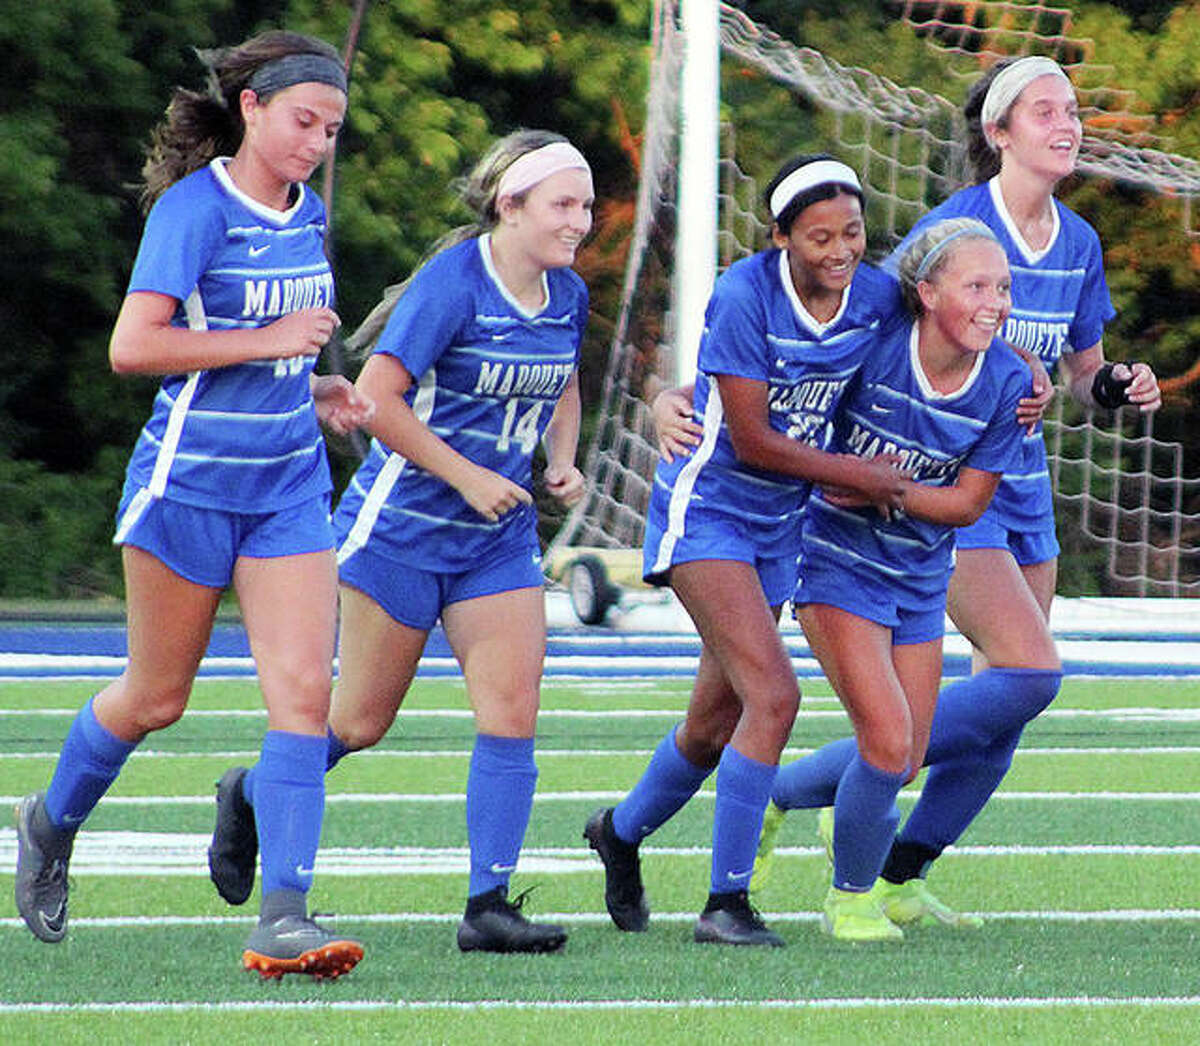 Marquette players, from left, Ellie Jacobs , Lydia Randazzo, Aela Scruggs, Clare Antrainer and Jillian Nelson celebrate a goal during Tuesday night's Class 1A Girls Super-Sectional soccer game against Belleville Althoff at Columbia High School.